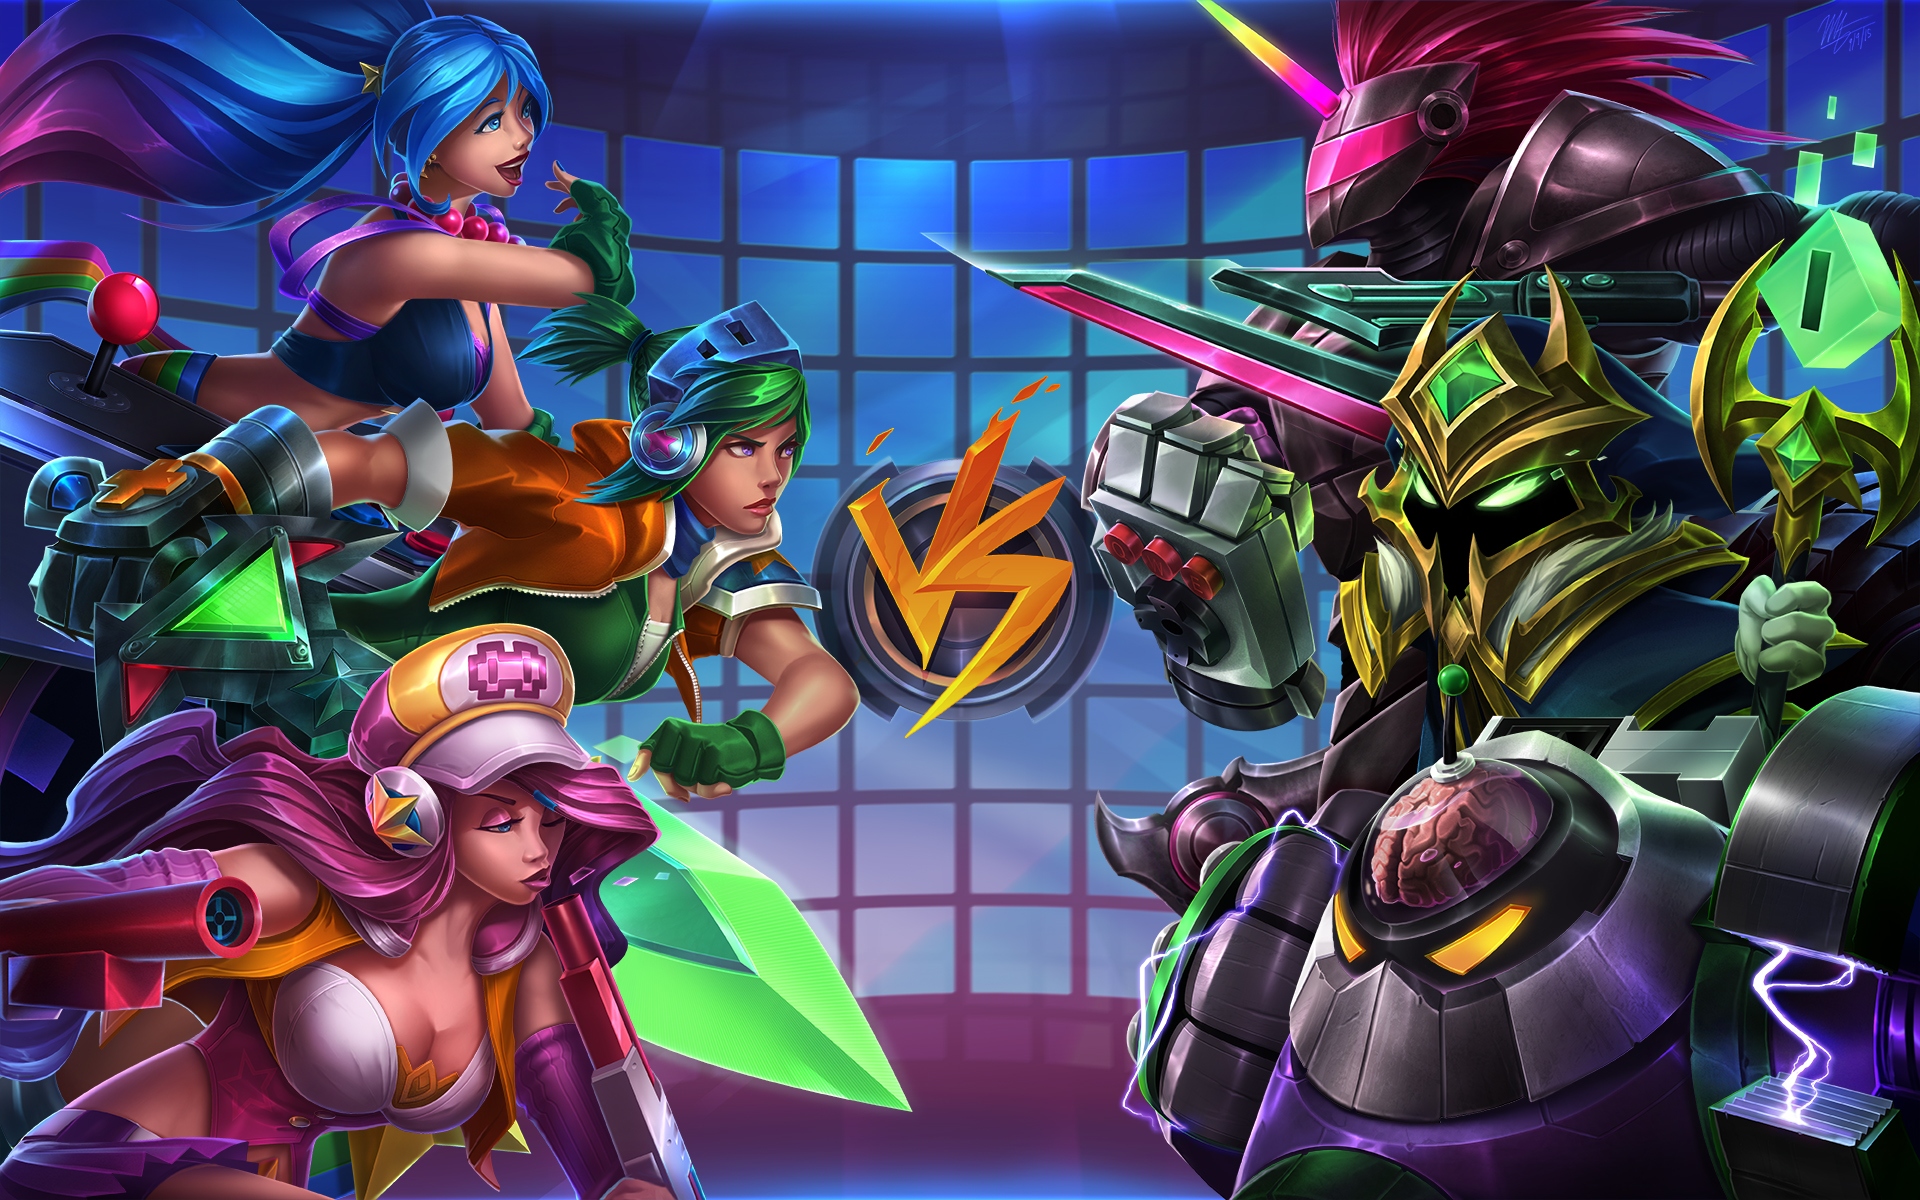 Free Download Arcade Skins League Of Legends Wallpapers Hd Art Of